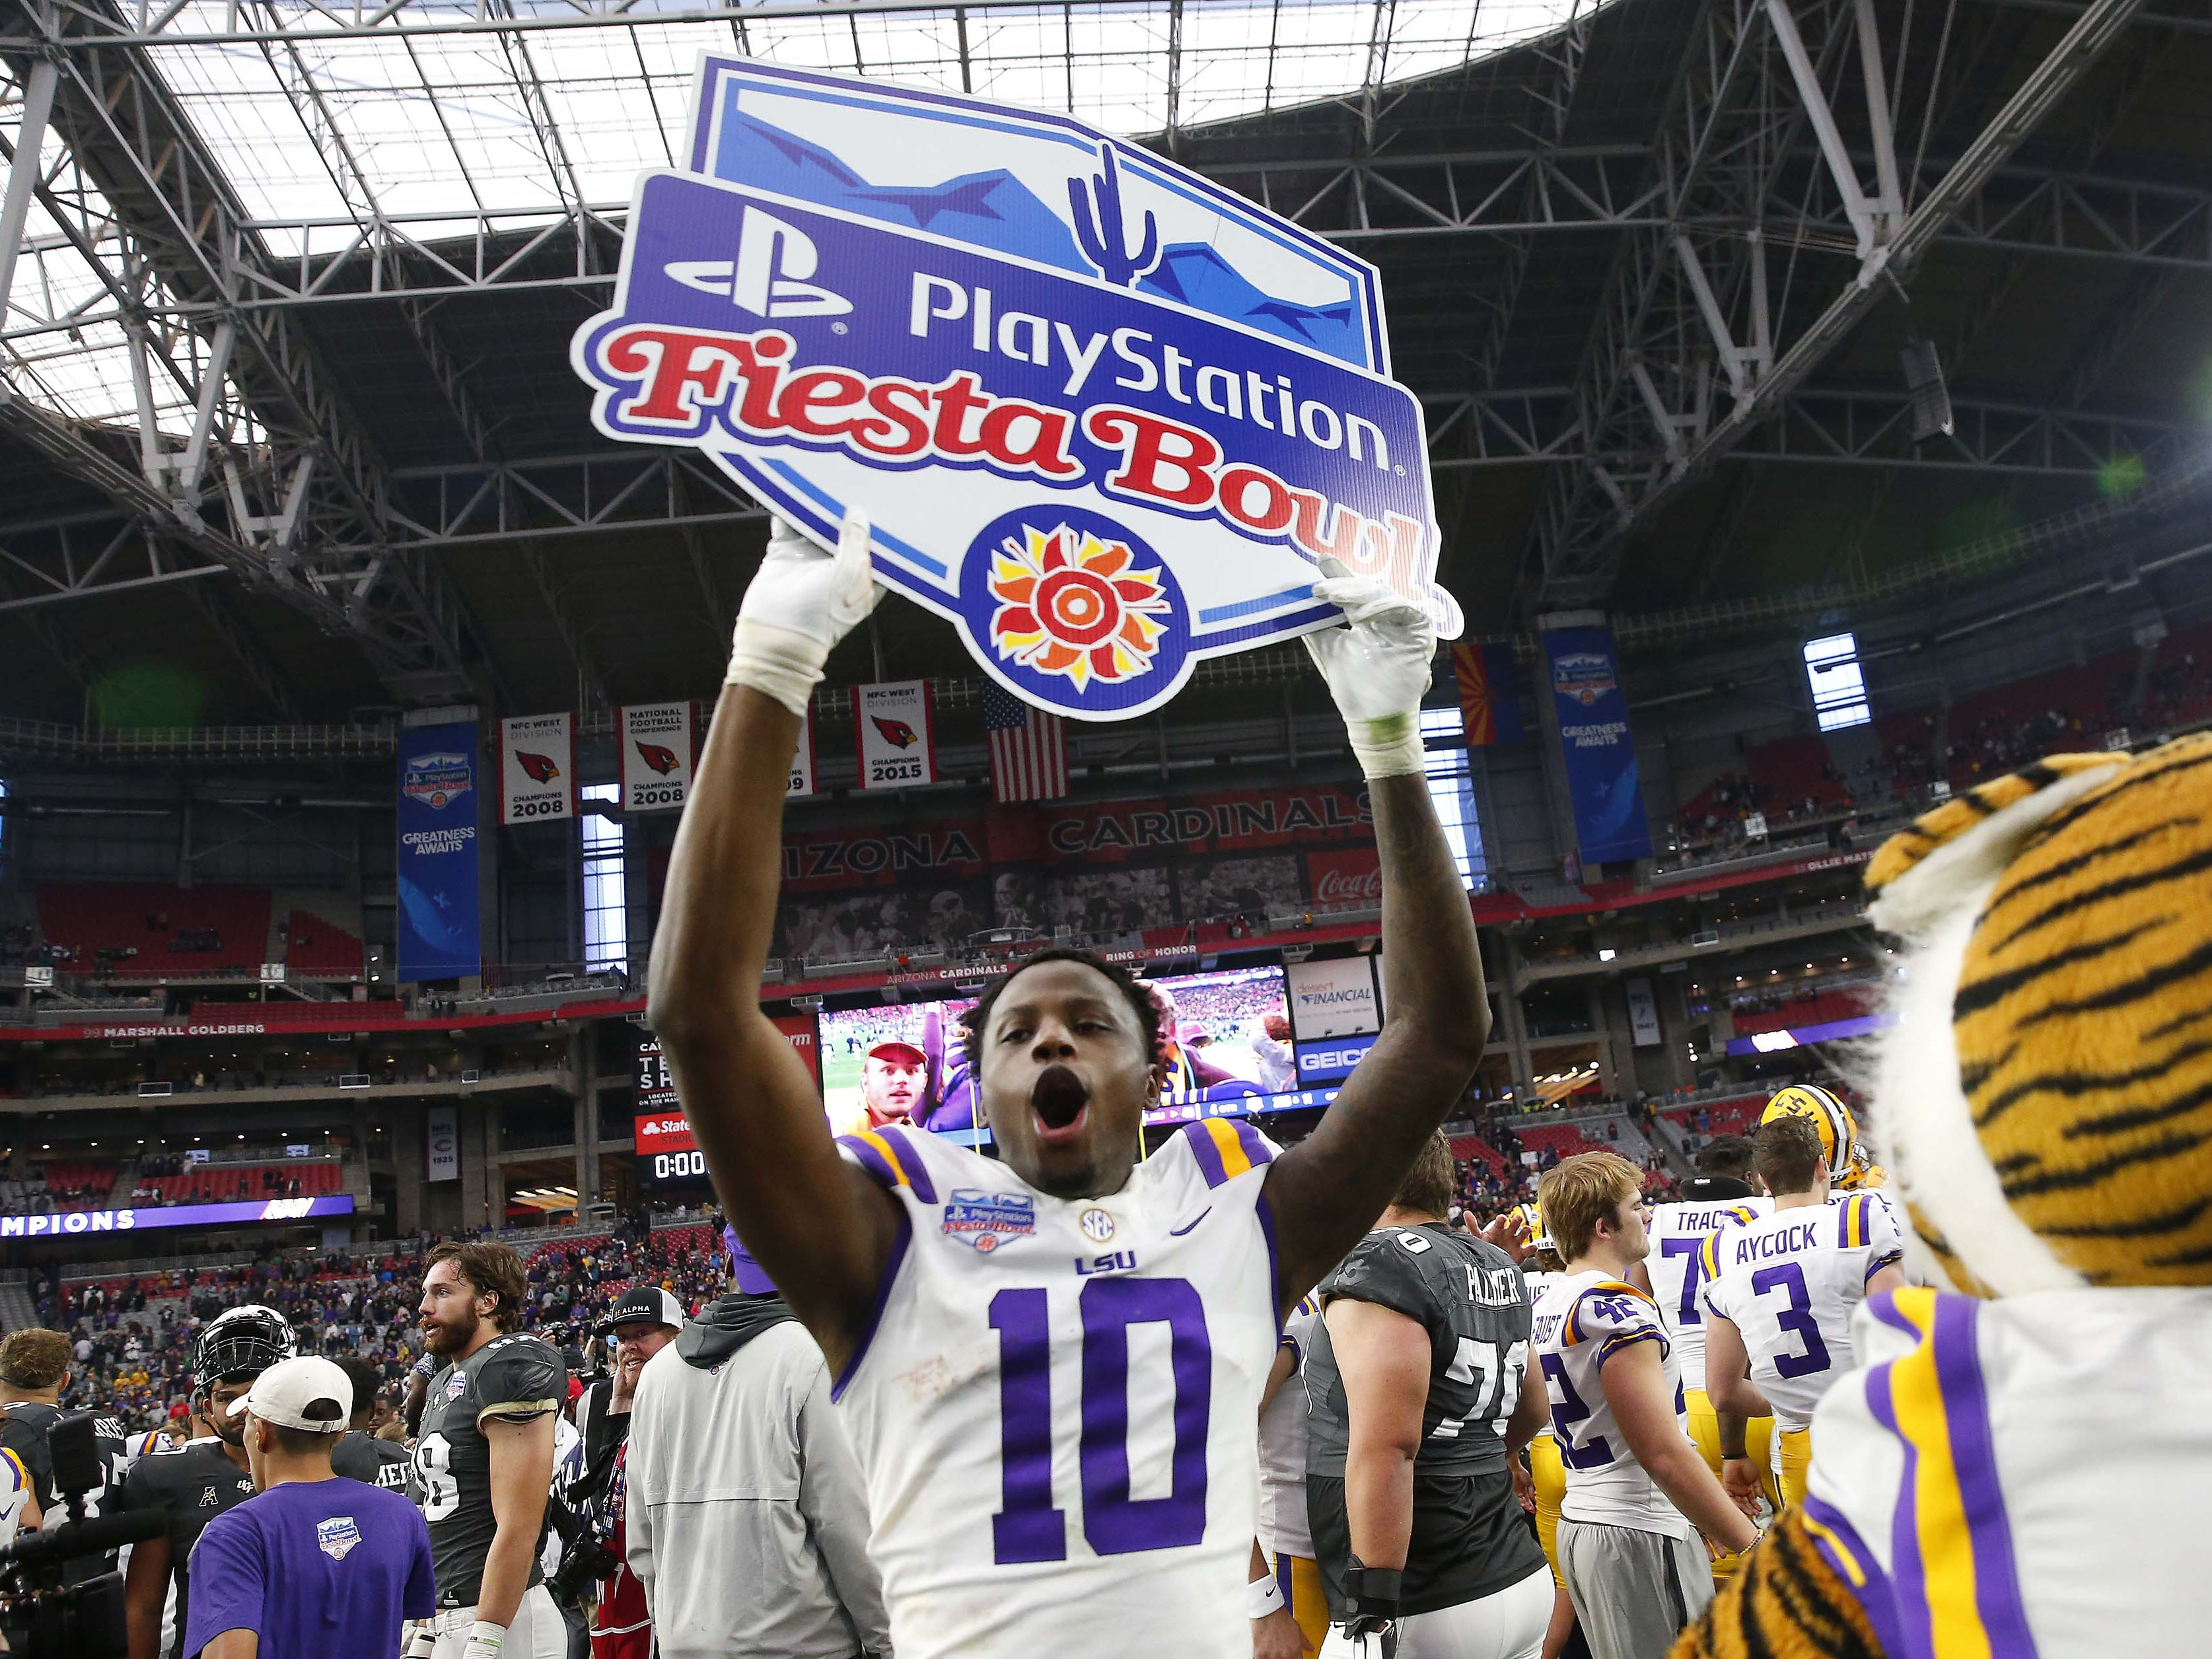 LSU wide receiver Stephen Sullivan (10) celebrates after winning the Fiesta Bowl against UCF in Glendale January 1, 2019. LSU won 40-32.